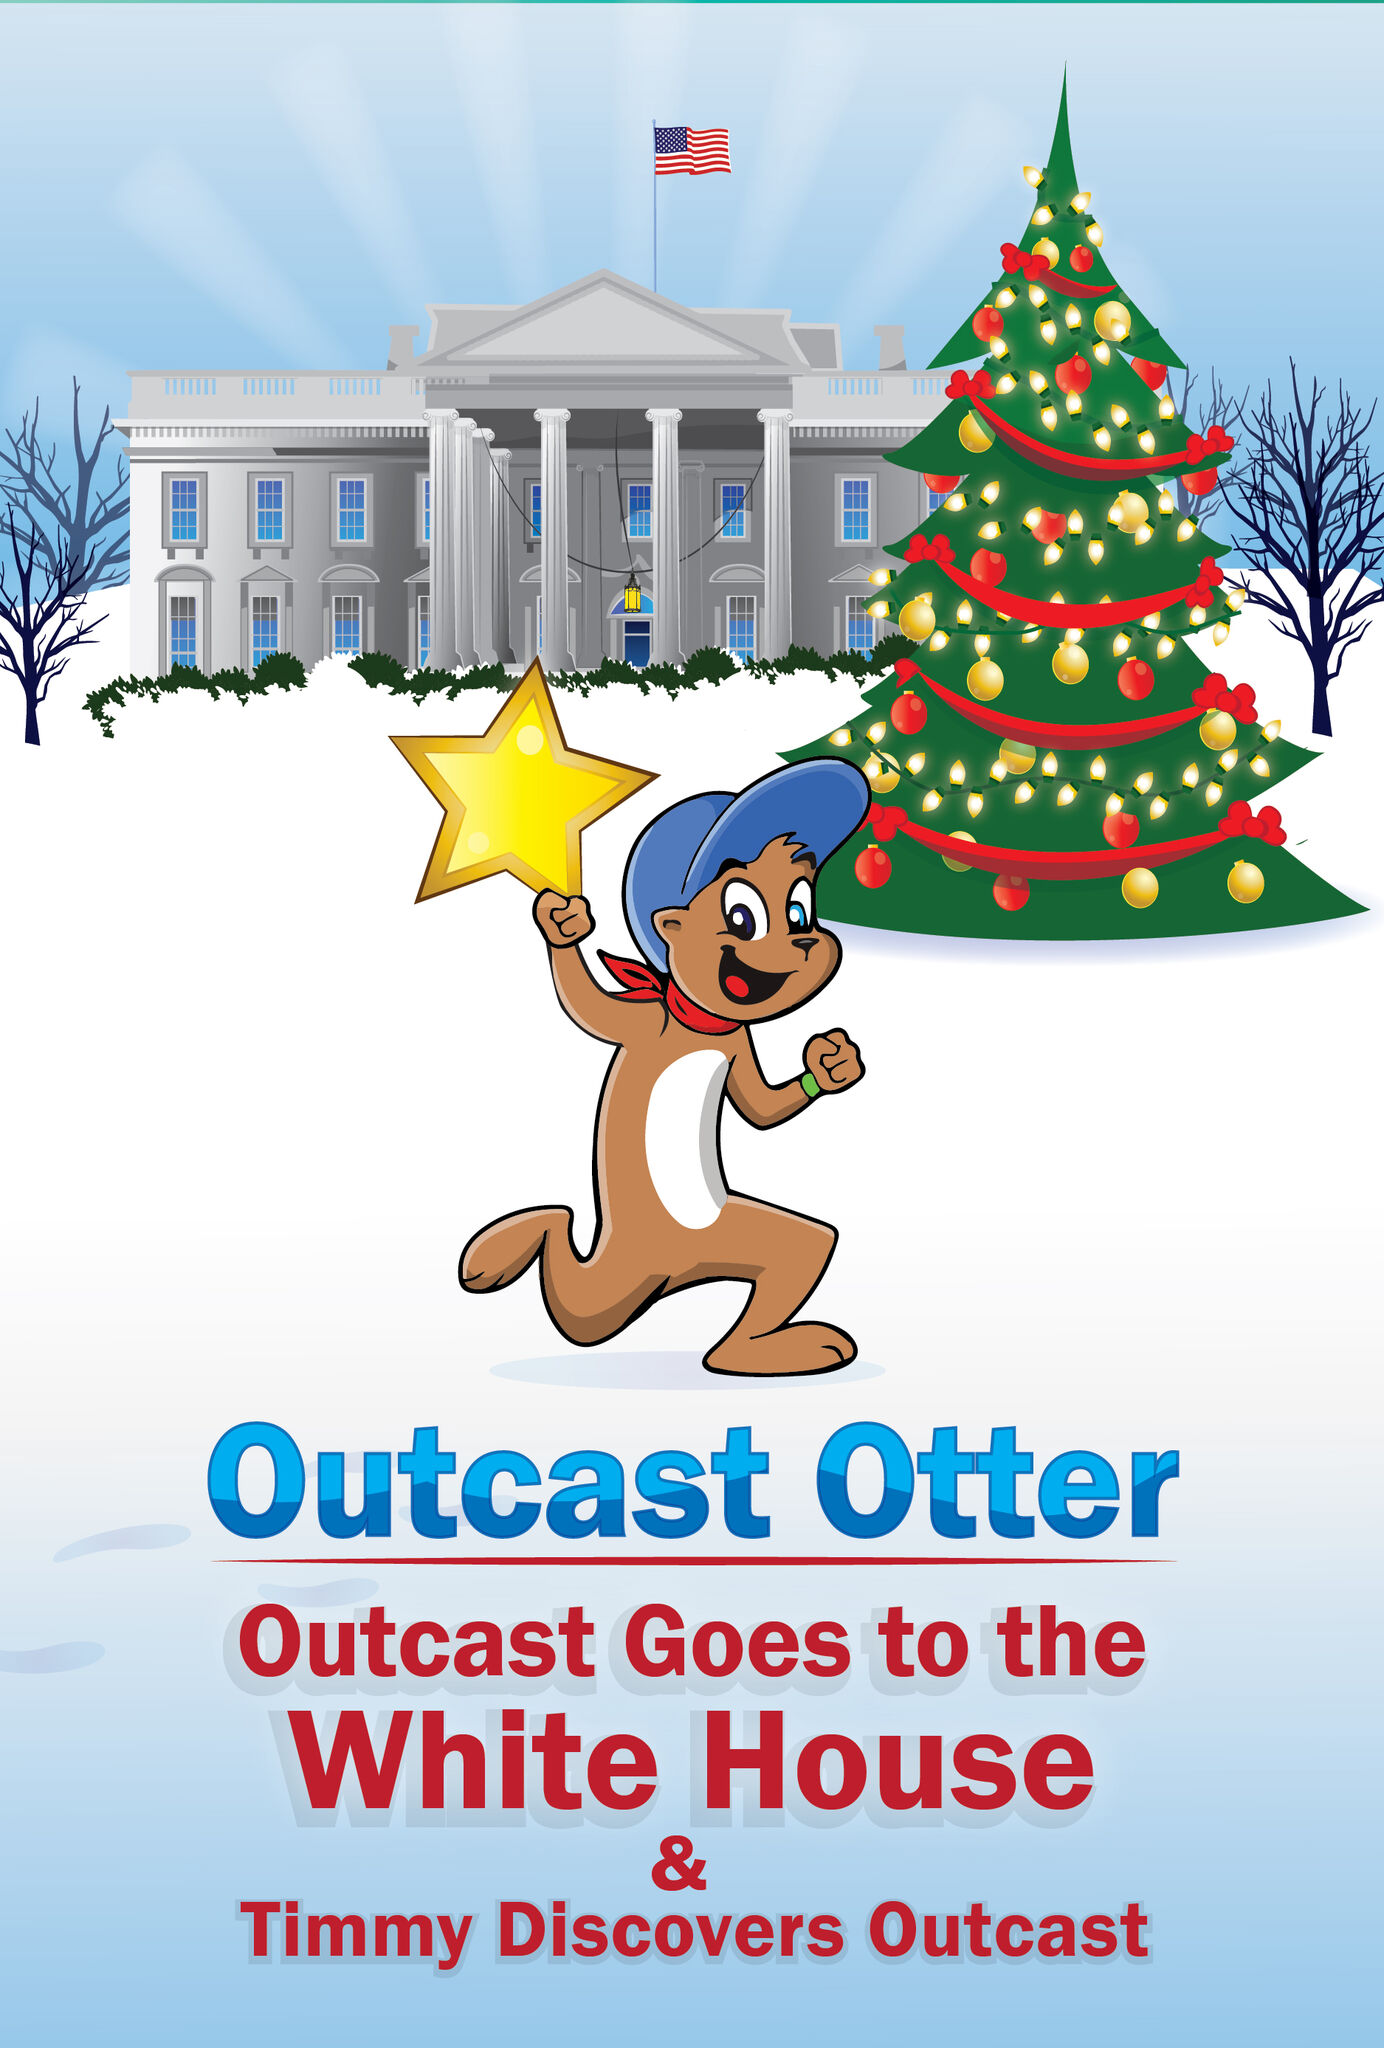 OUTCAST GOES TO THE WHITE HOUSE - CHILDREN'S BOOK